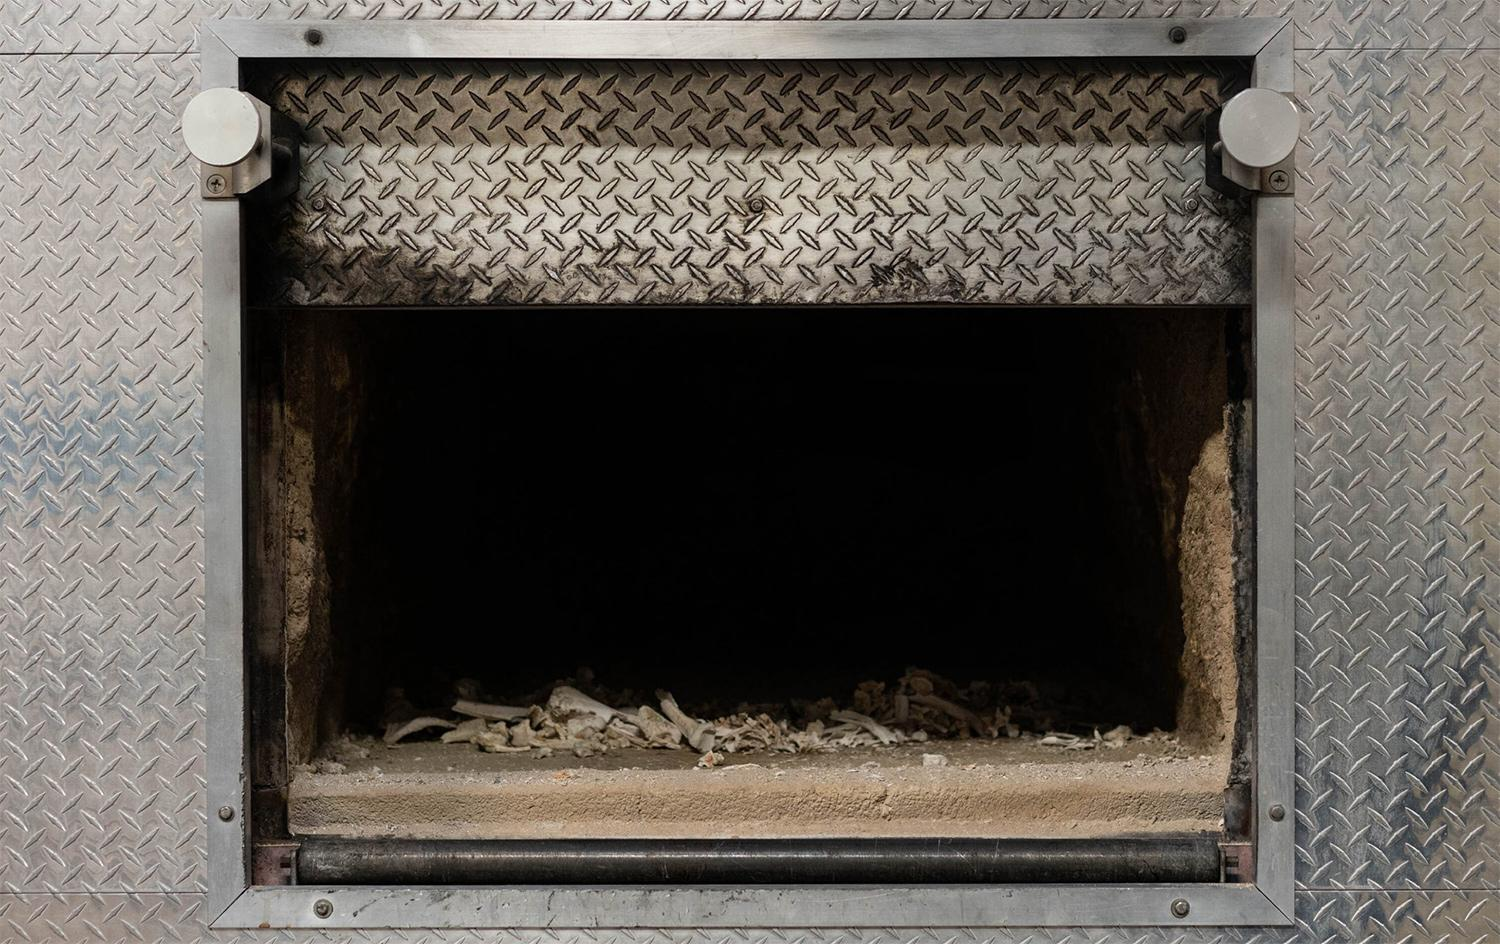 Cremated remains in crematorium incineration chamber